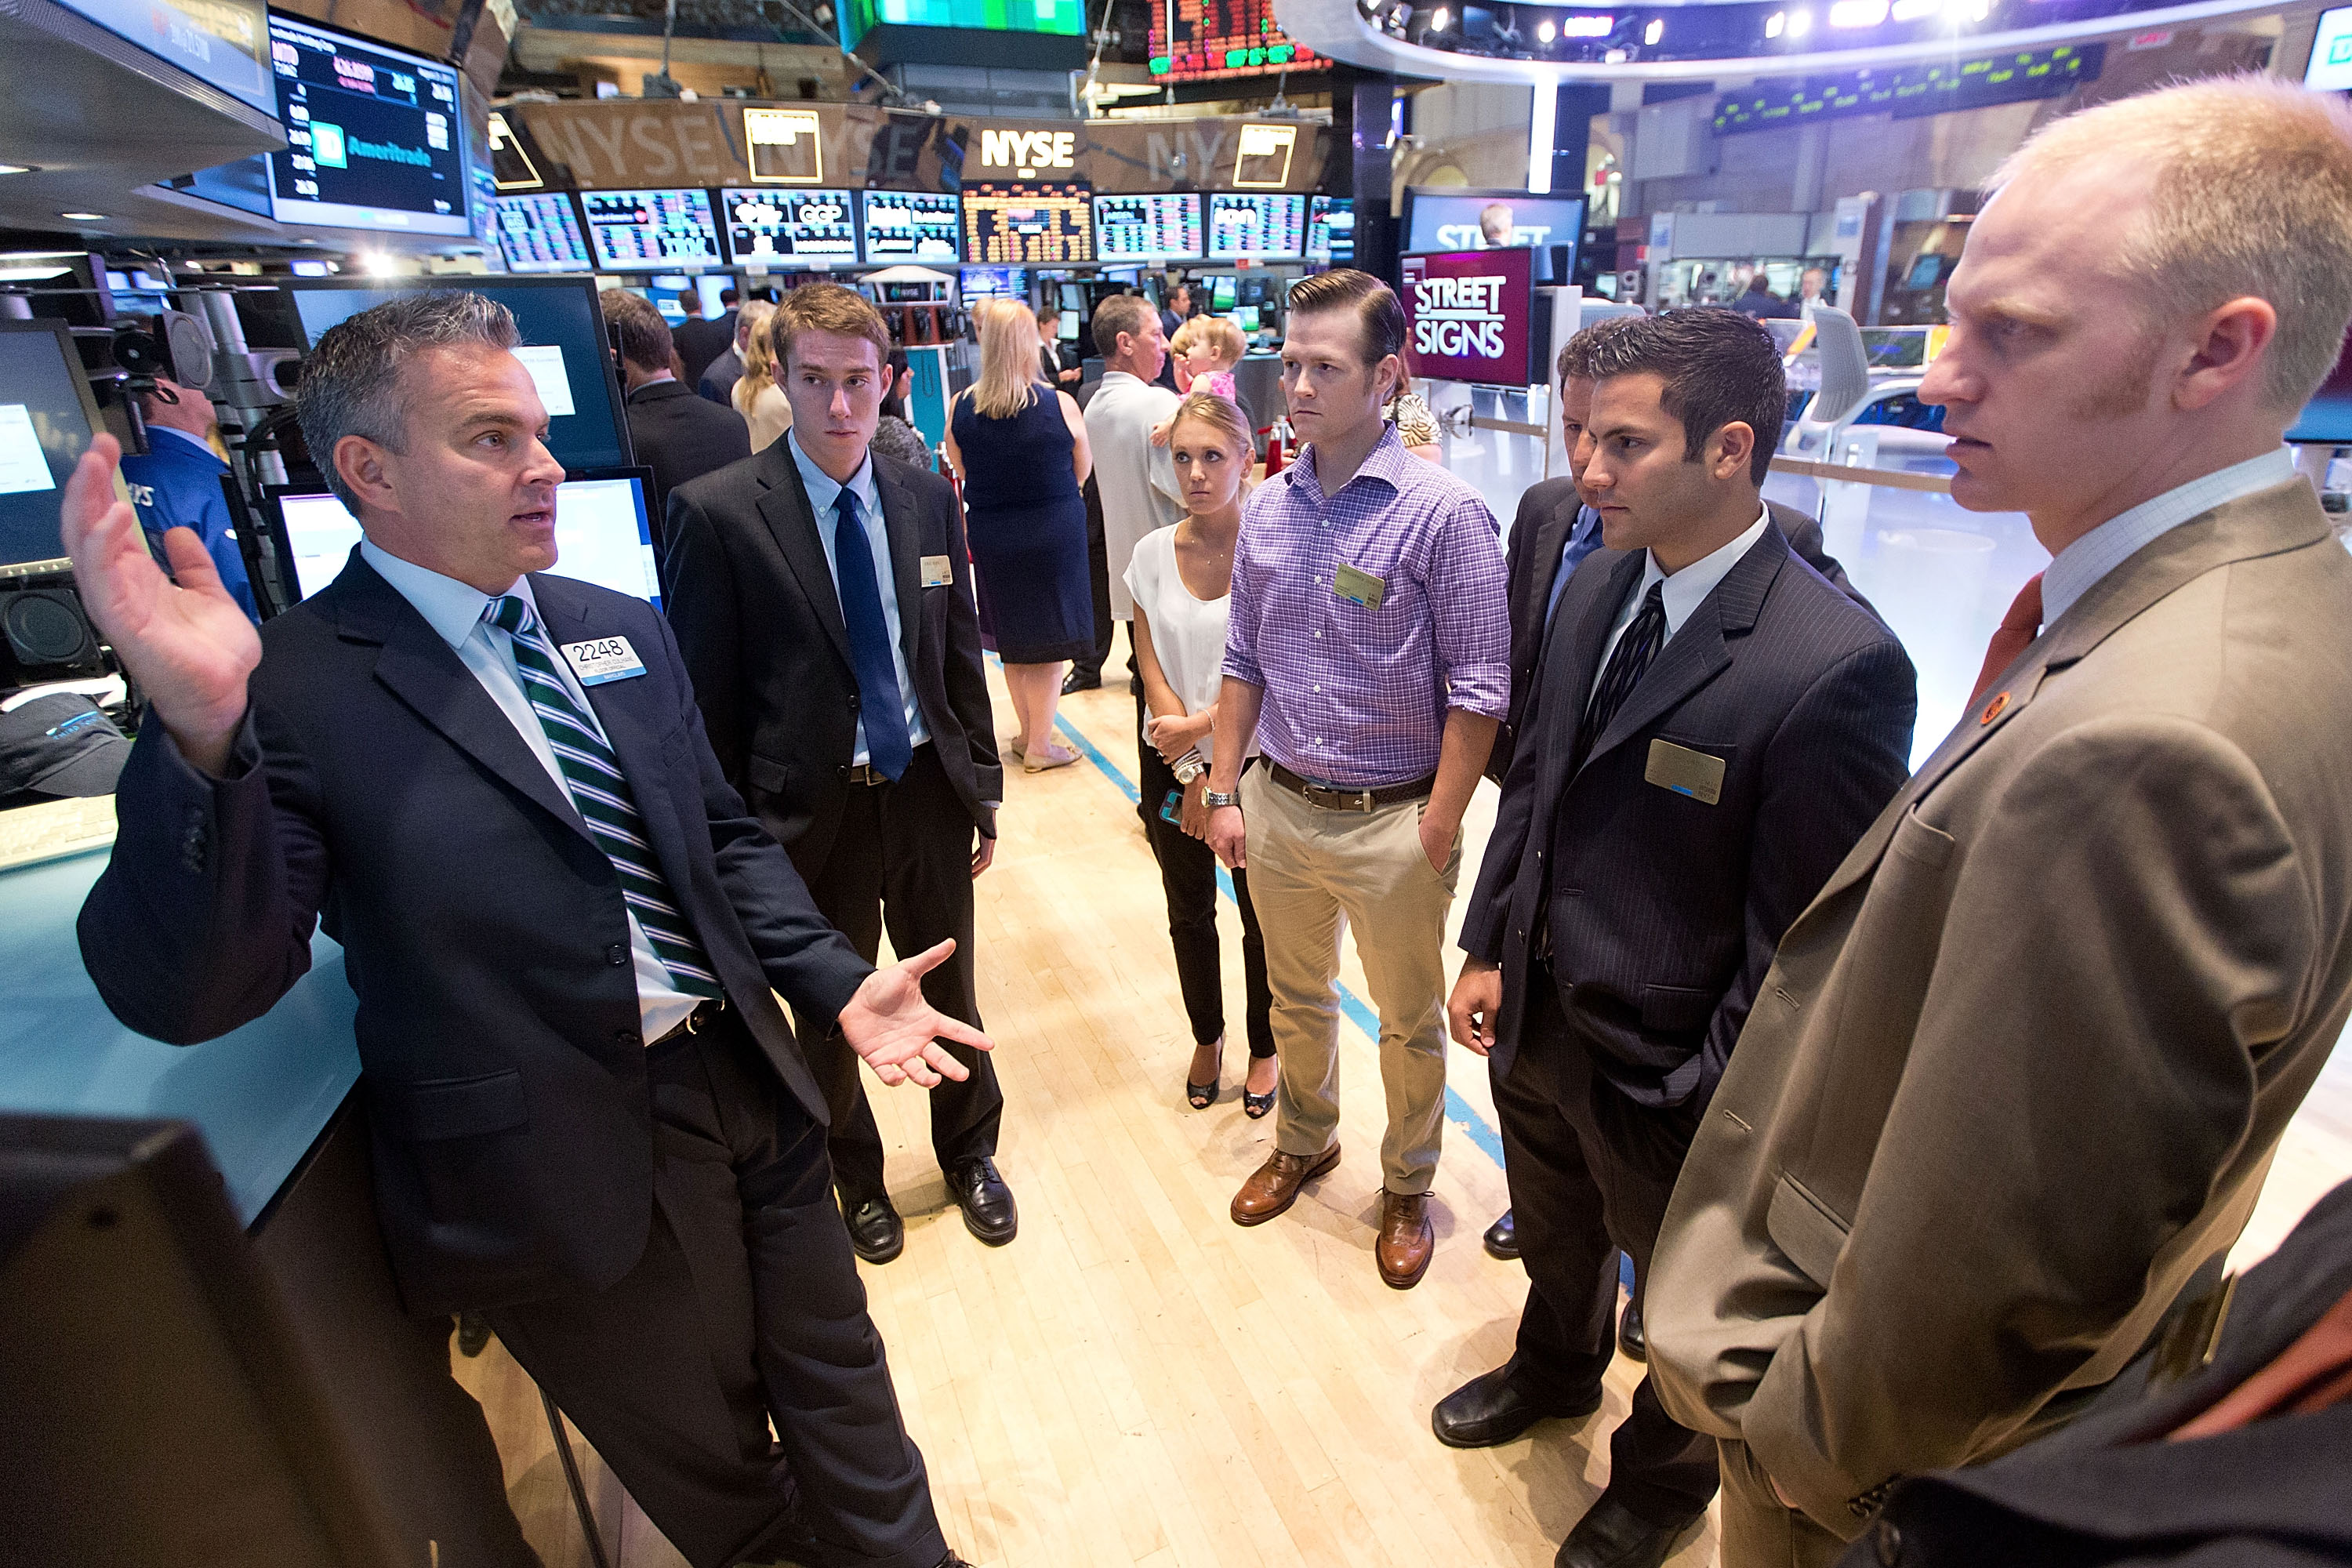 Eric Siss (second from left) and other scholarship winners listen to a floor trader during a tour of the New York Stock Exchange.